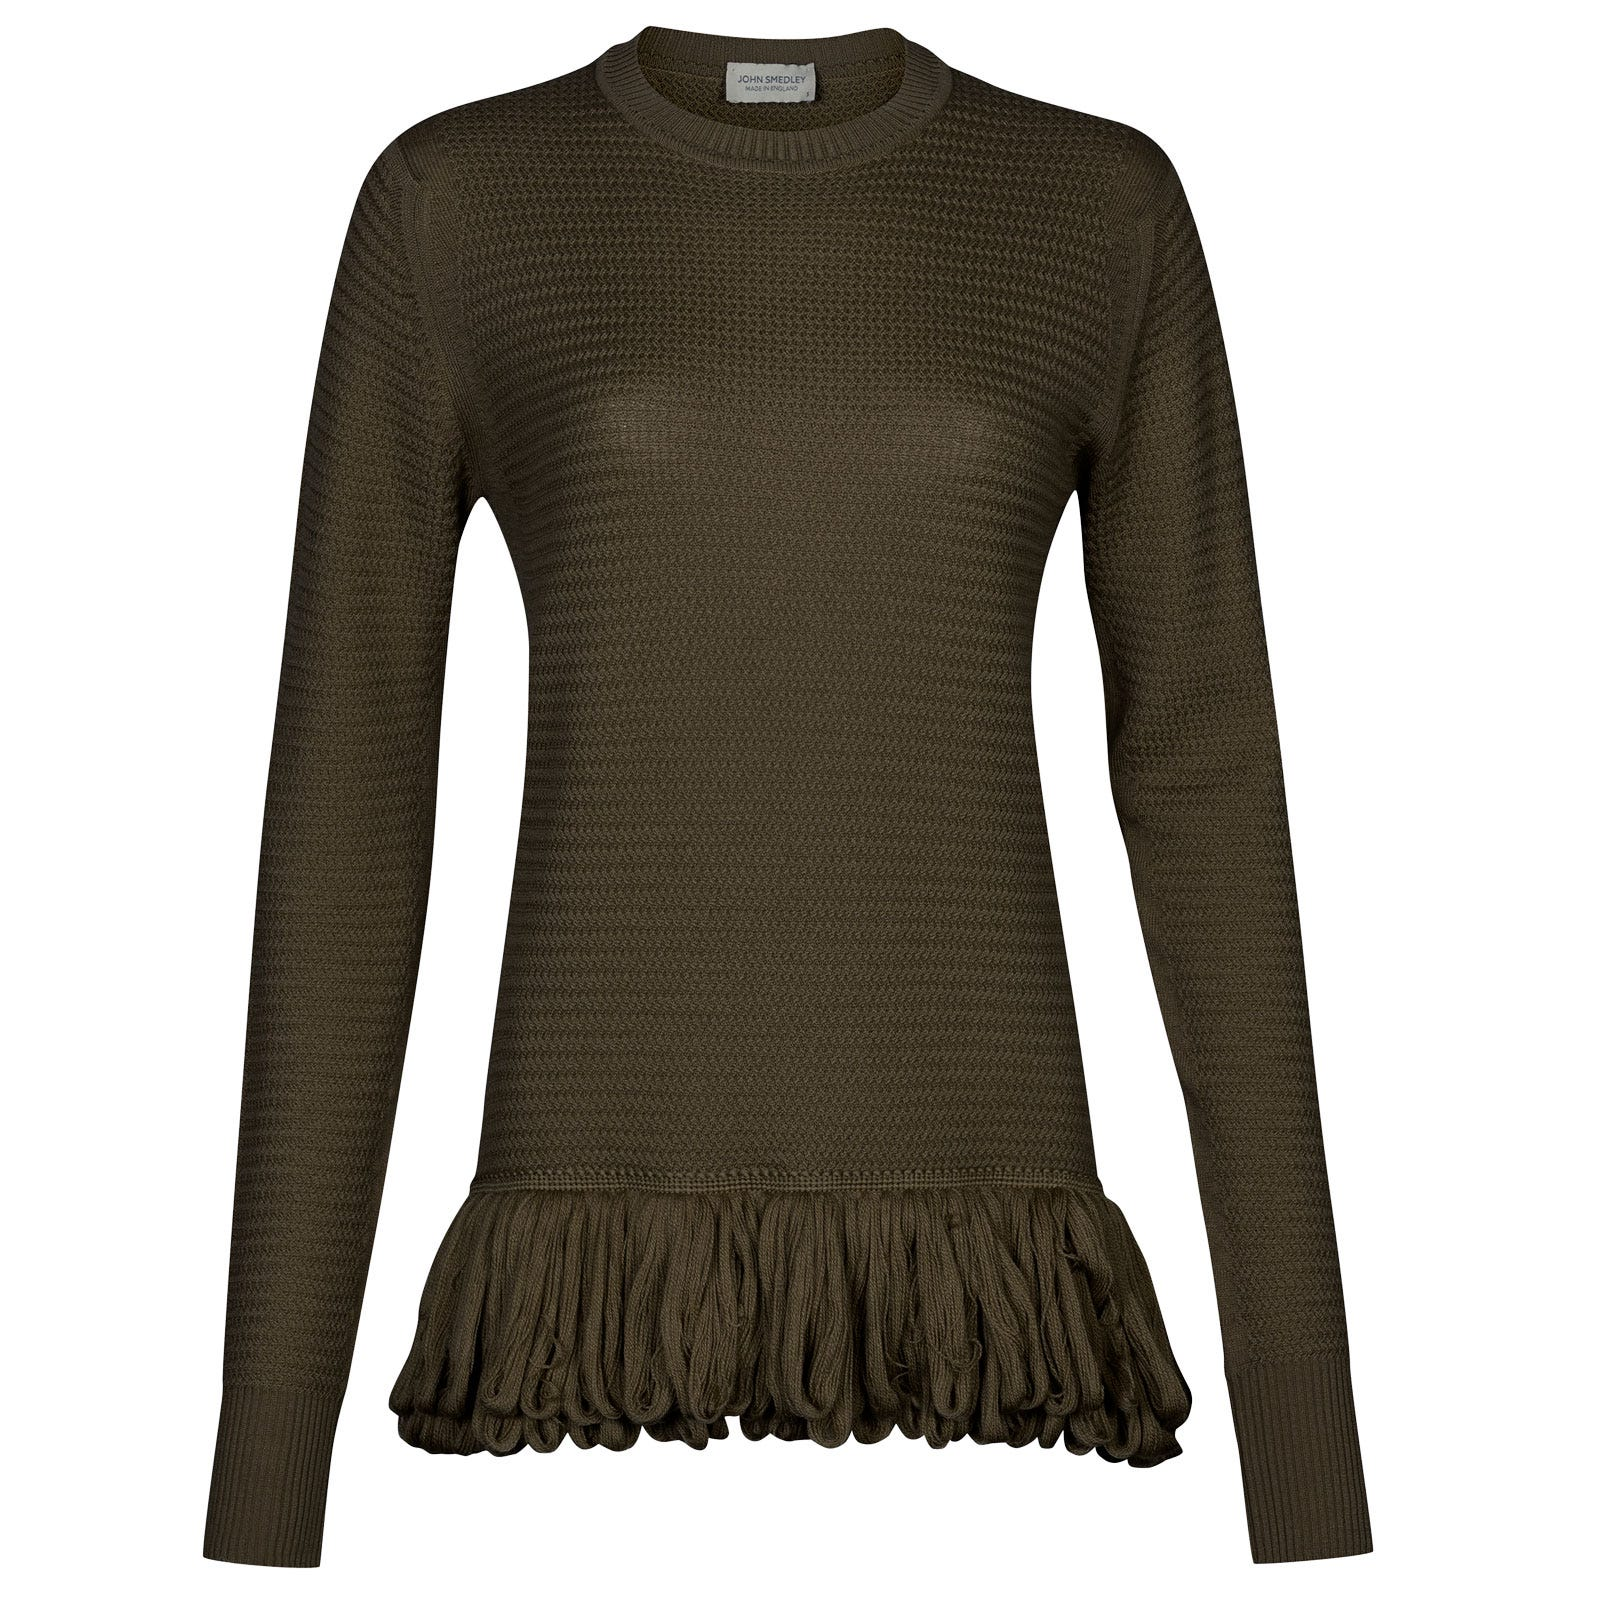 John Smedley burnet Merino Wool Sweater in Kielder Green-S